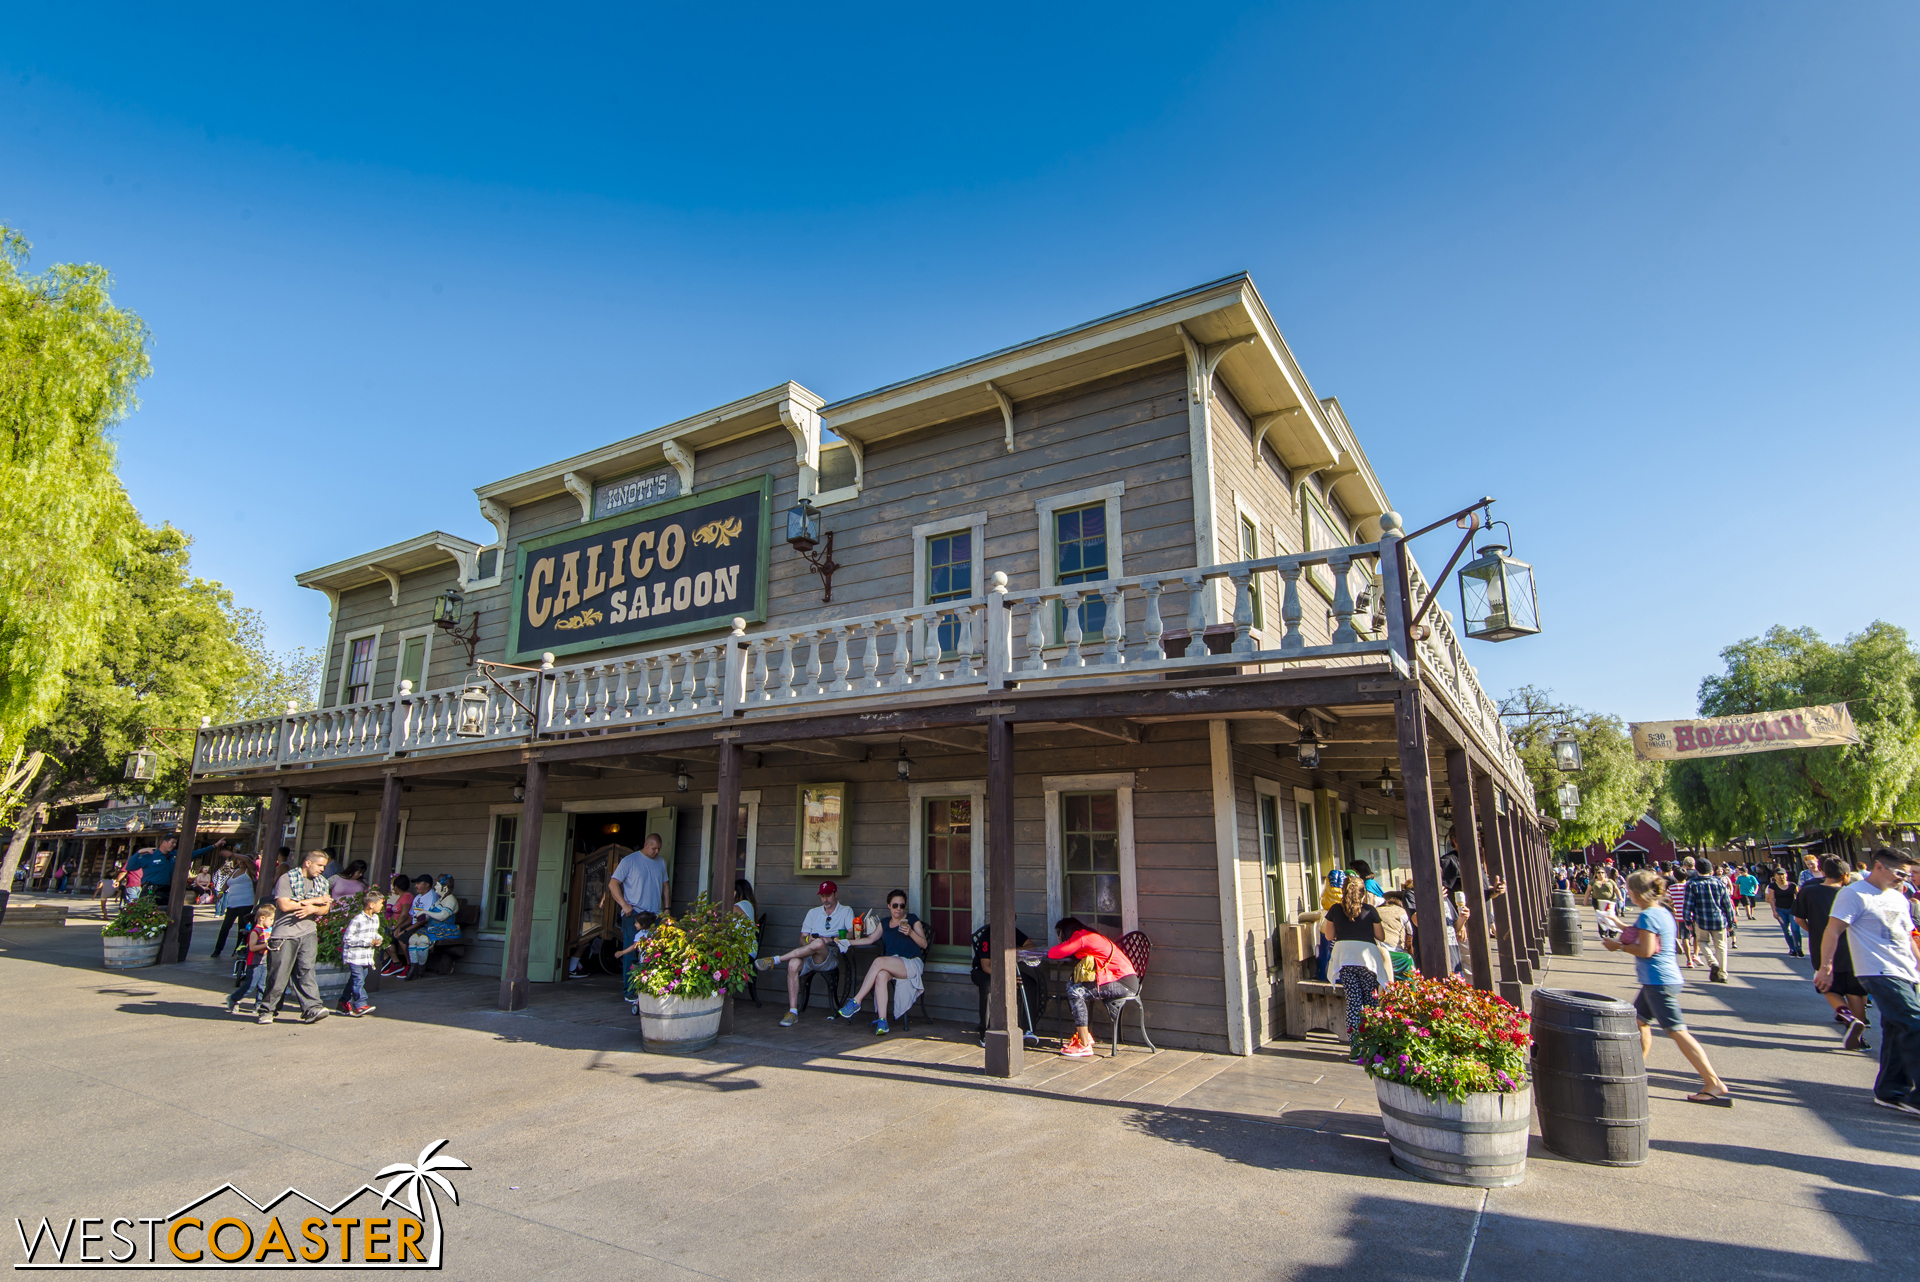 The Calico Saloon is a great place to catch some dancing girls, but more on that later.